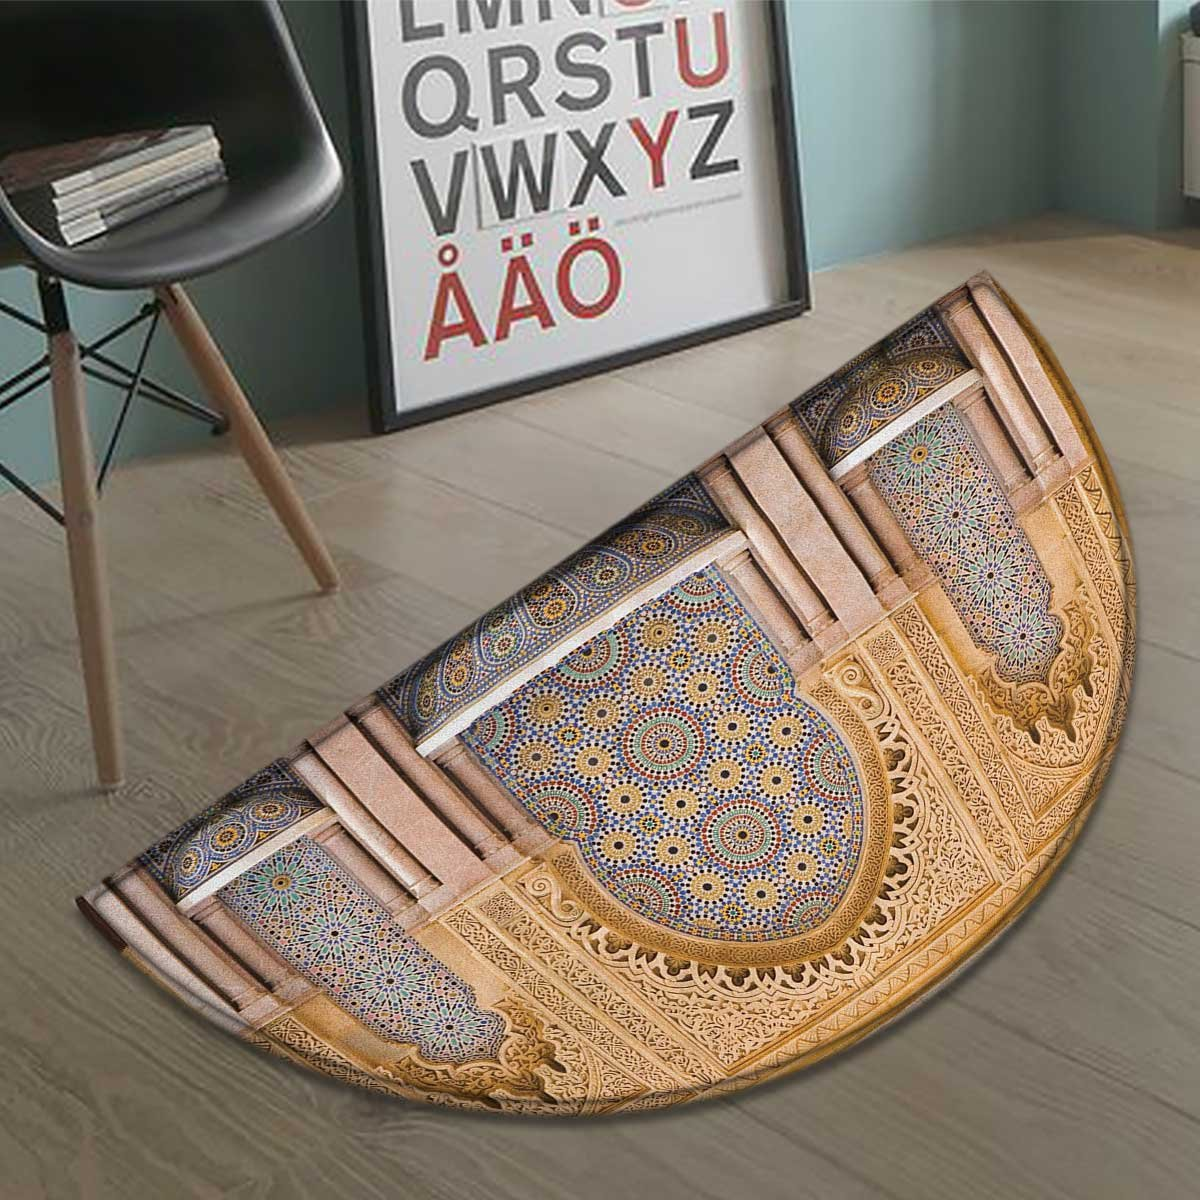 Suchashome Moroccan half moon door mats for home Typical Moroccan Tiled Fountain in the City of Rabat Near Hassan Tower Bath Mat Bathroom Mat with Non Slip Apricot Pale Brown size:35.5''x23.7''